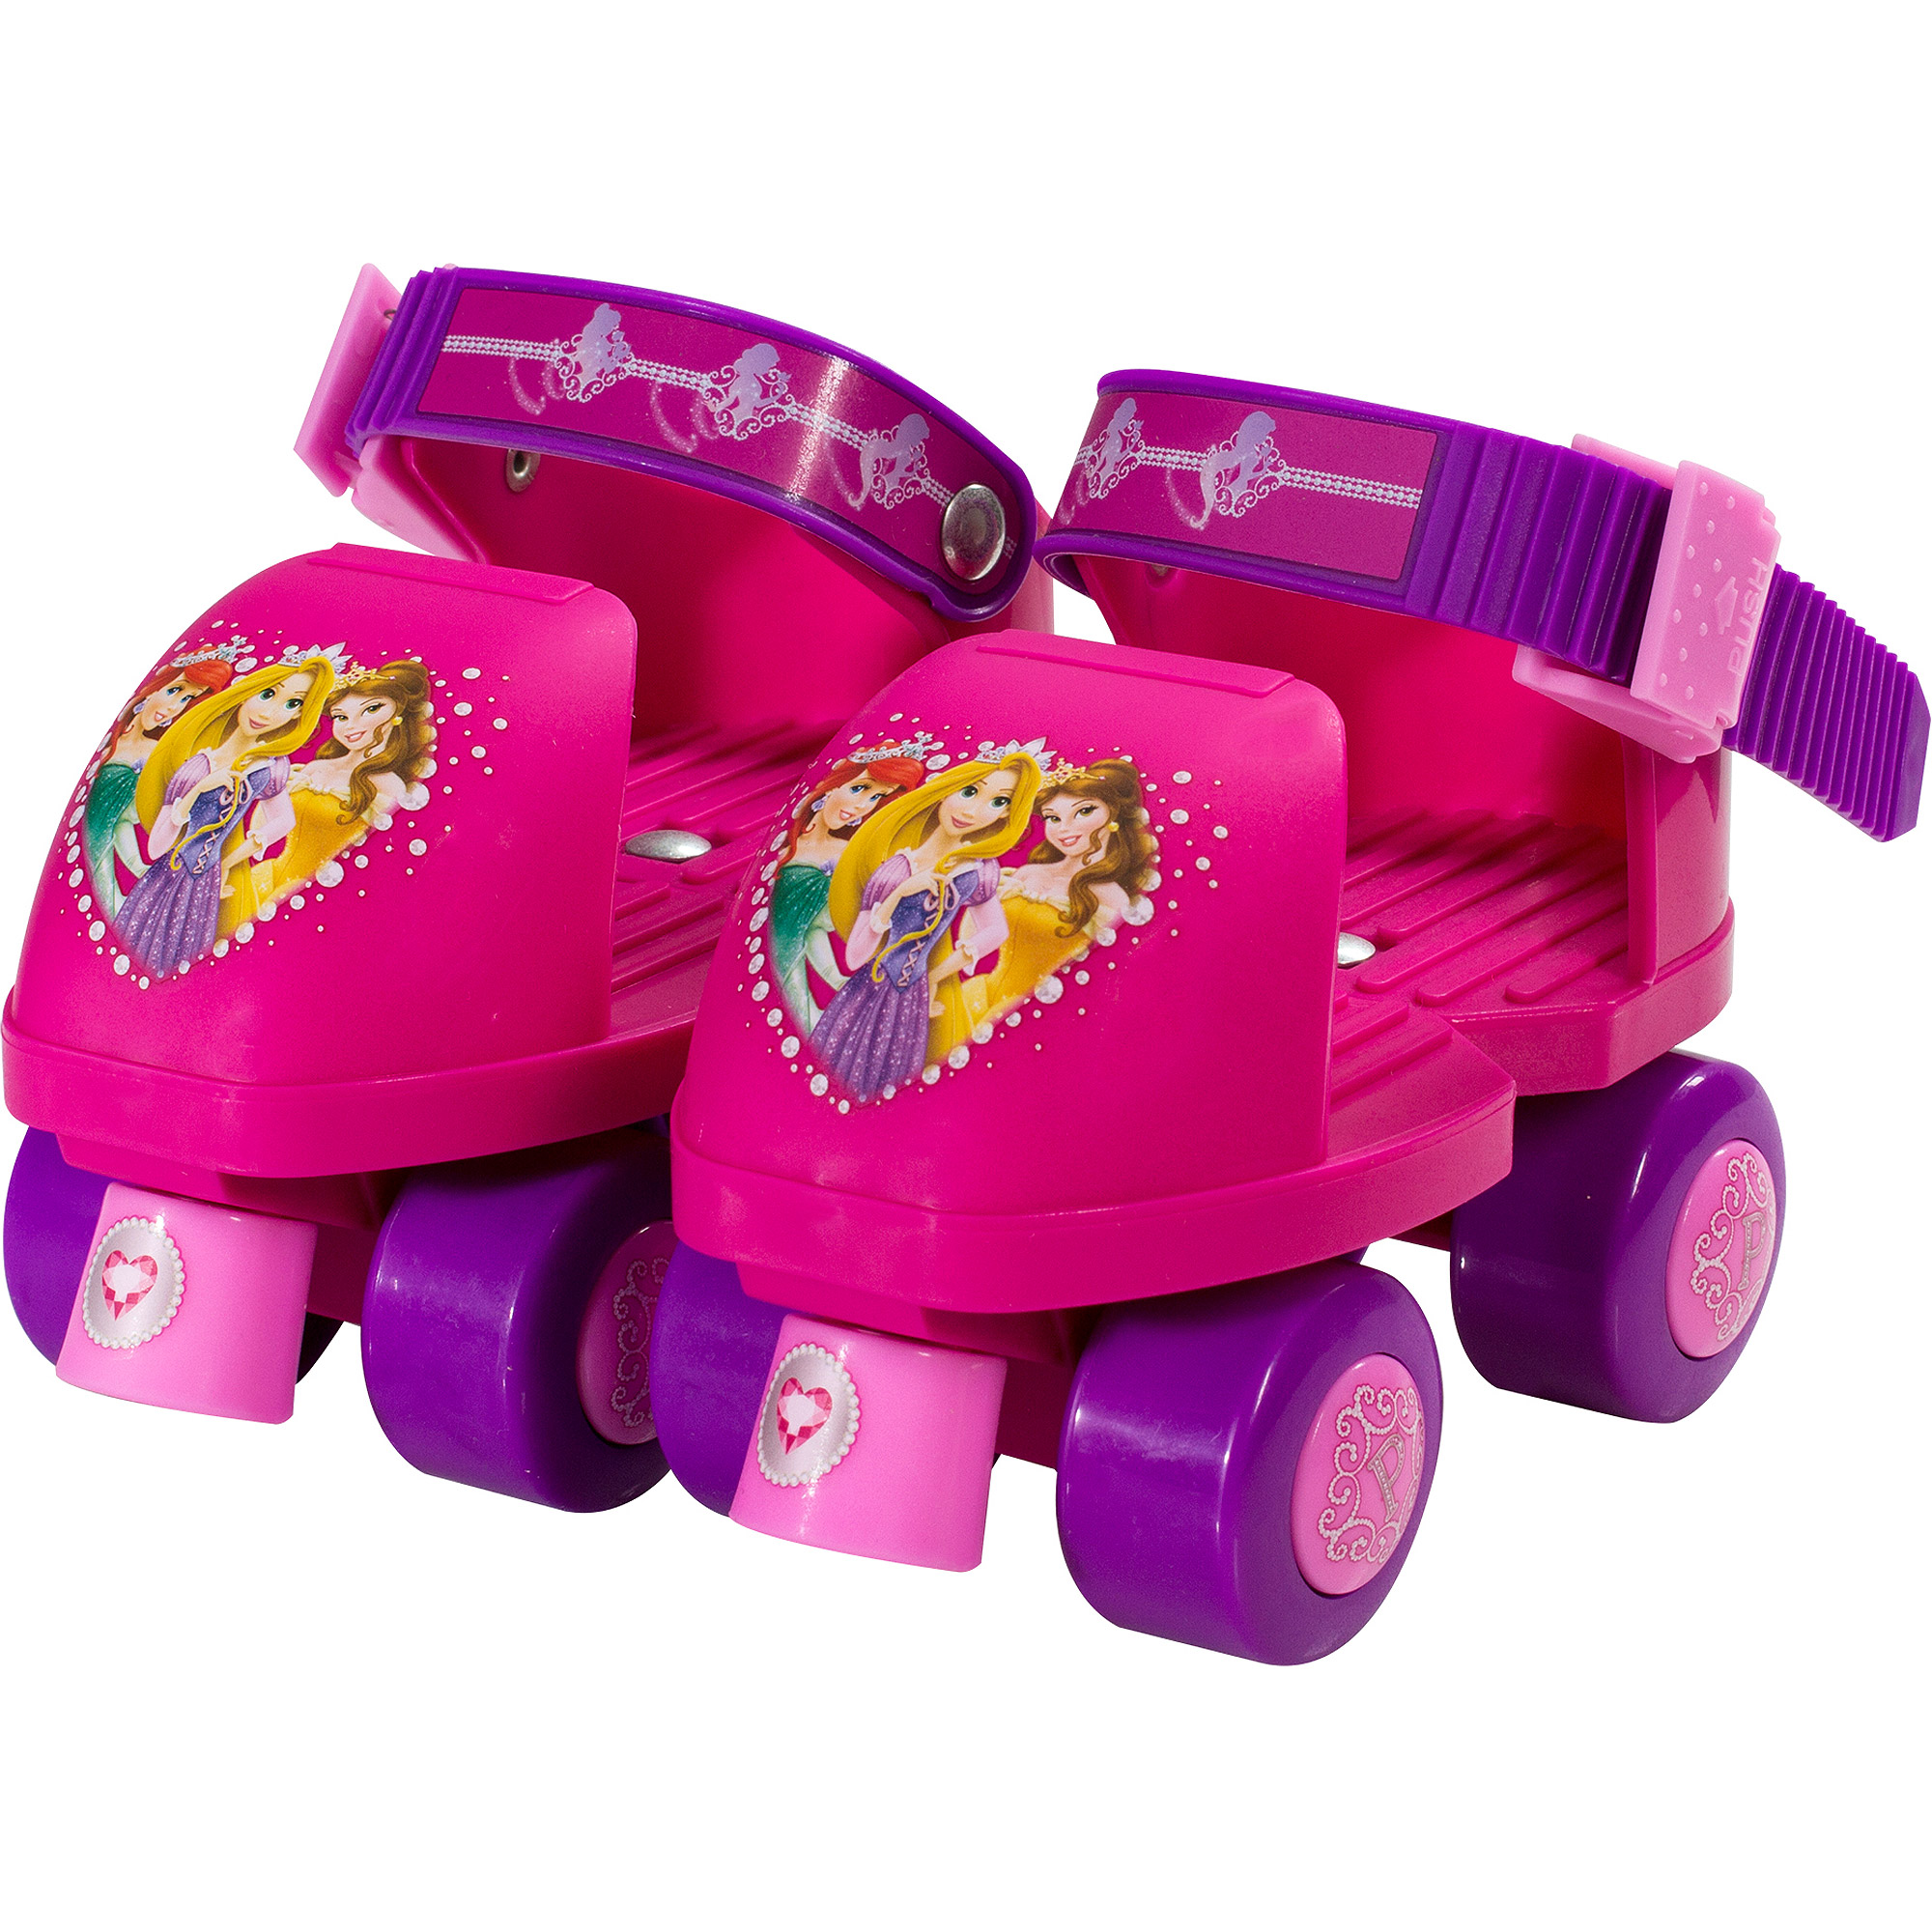 Disney Princess Kid's Rollerskates with Knee Pads, Junior Size 6-12